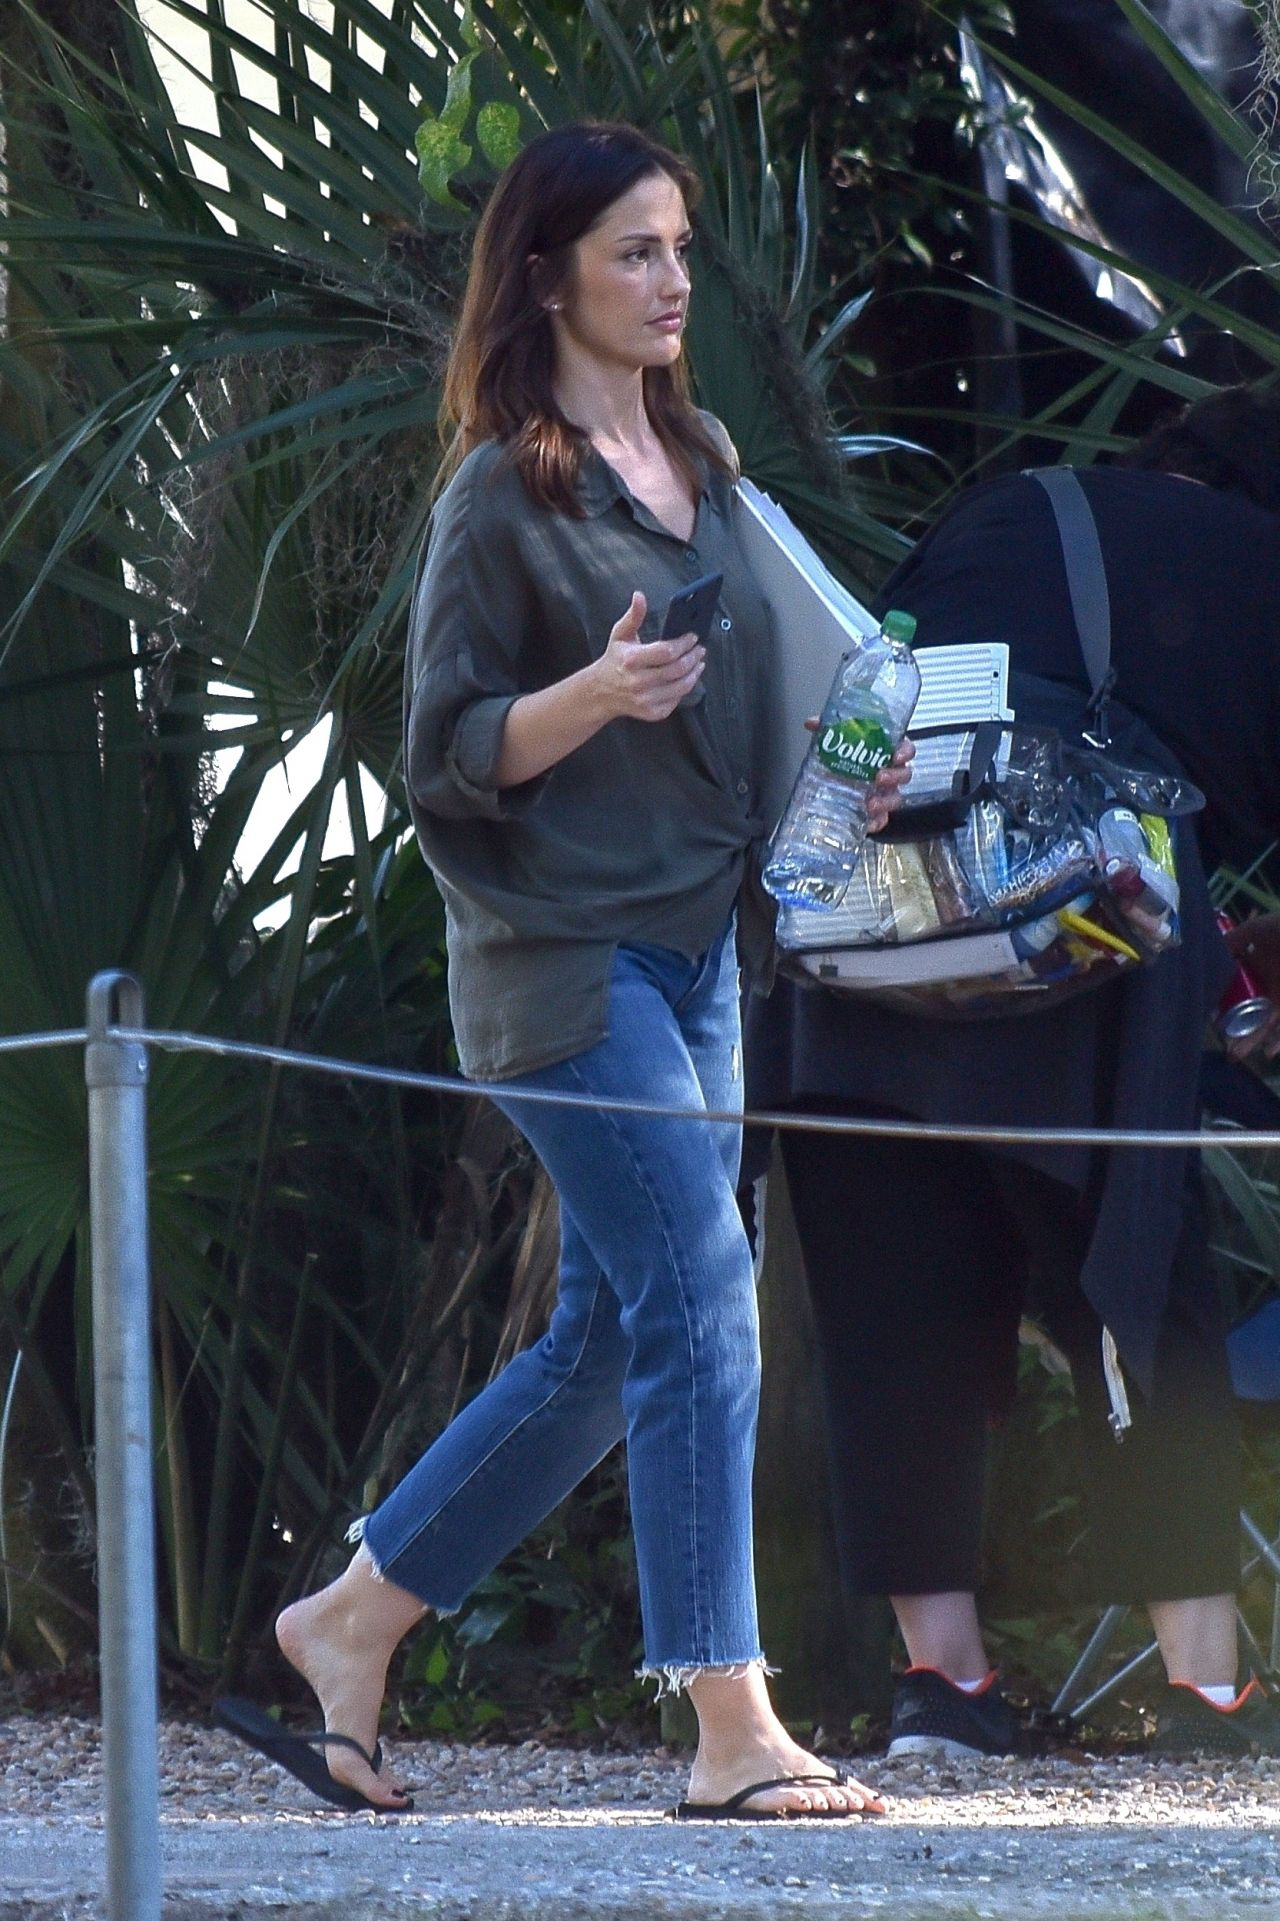 """Filming In Progress The Most Beautiful Actress In The World: Filming """"The Beach House"""" In Savannah 10/25/2017"""